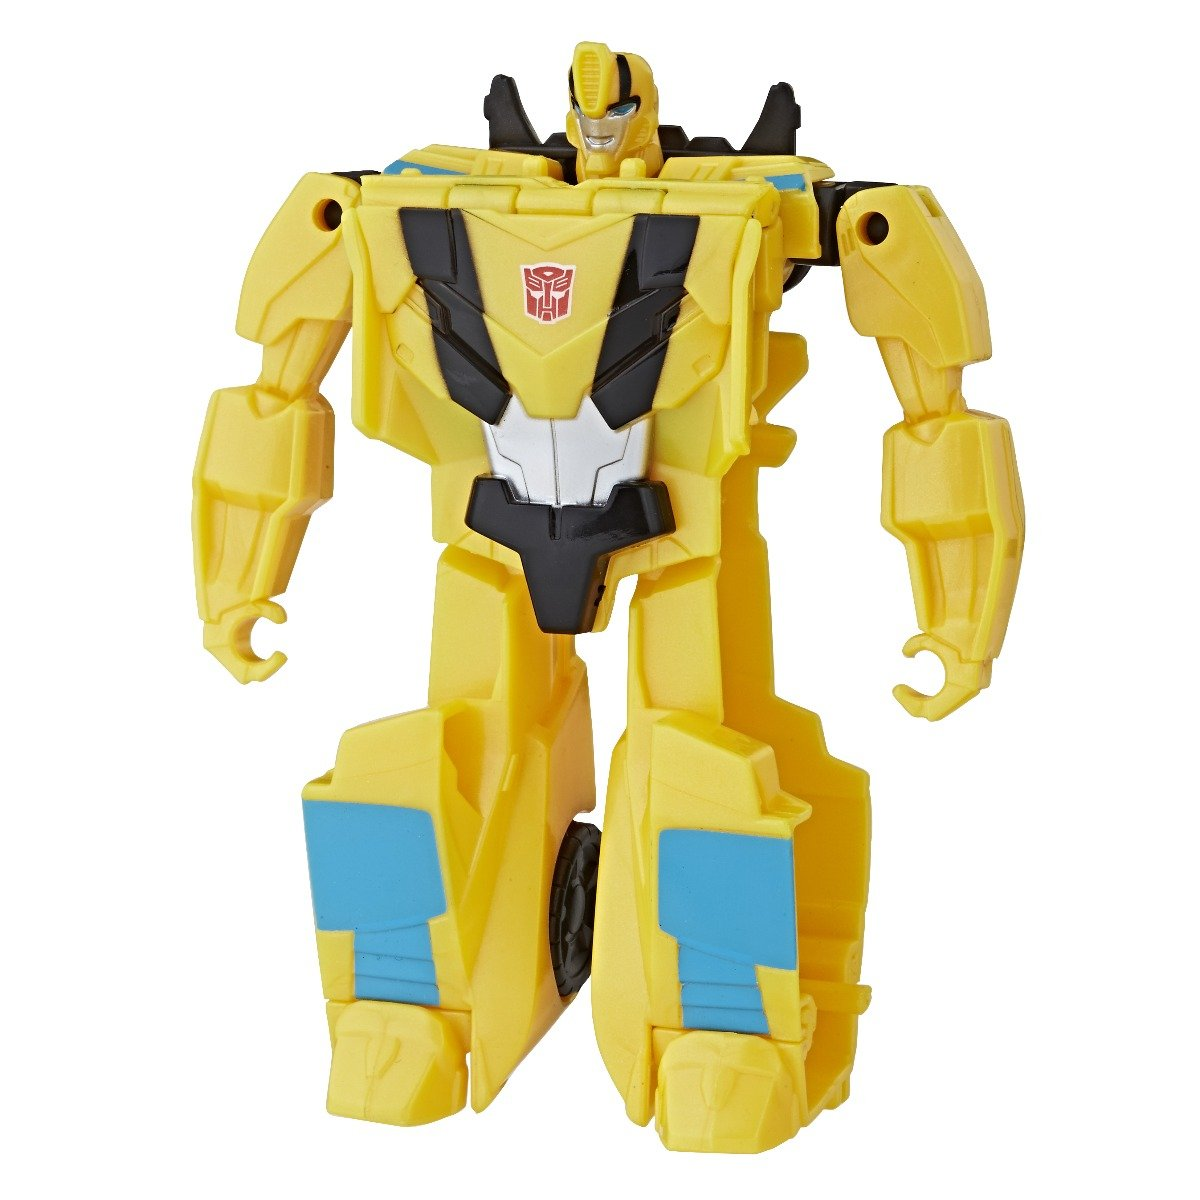 Figurina Transformers Cyberverse Step Charger Bumblebee